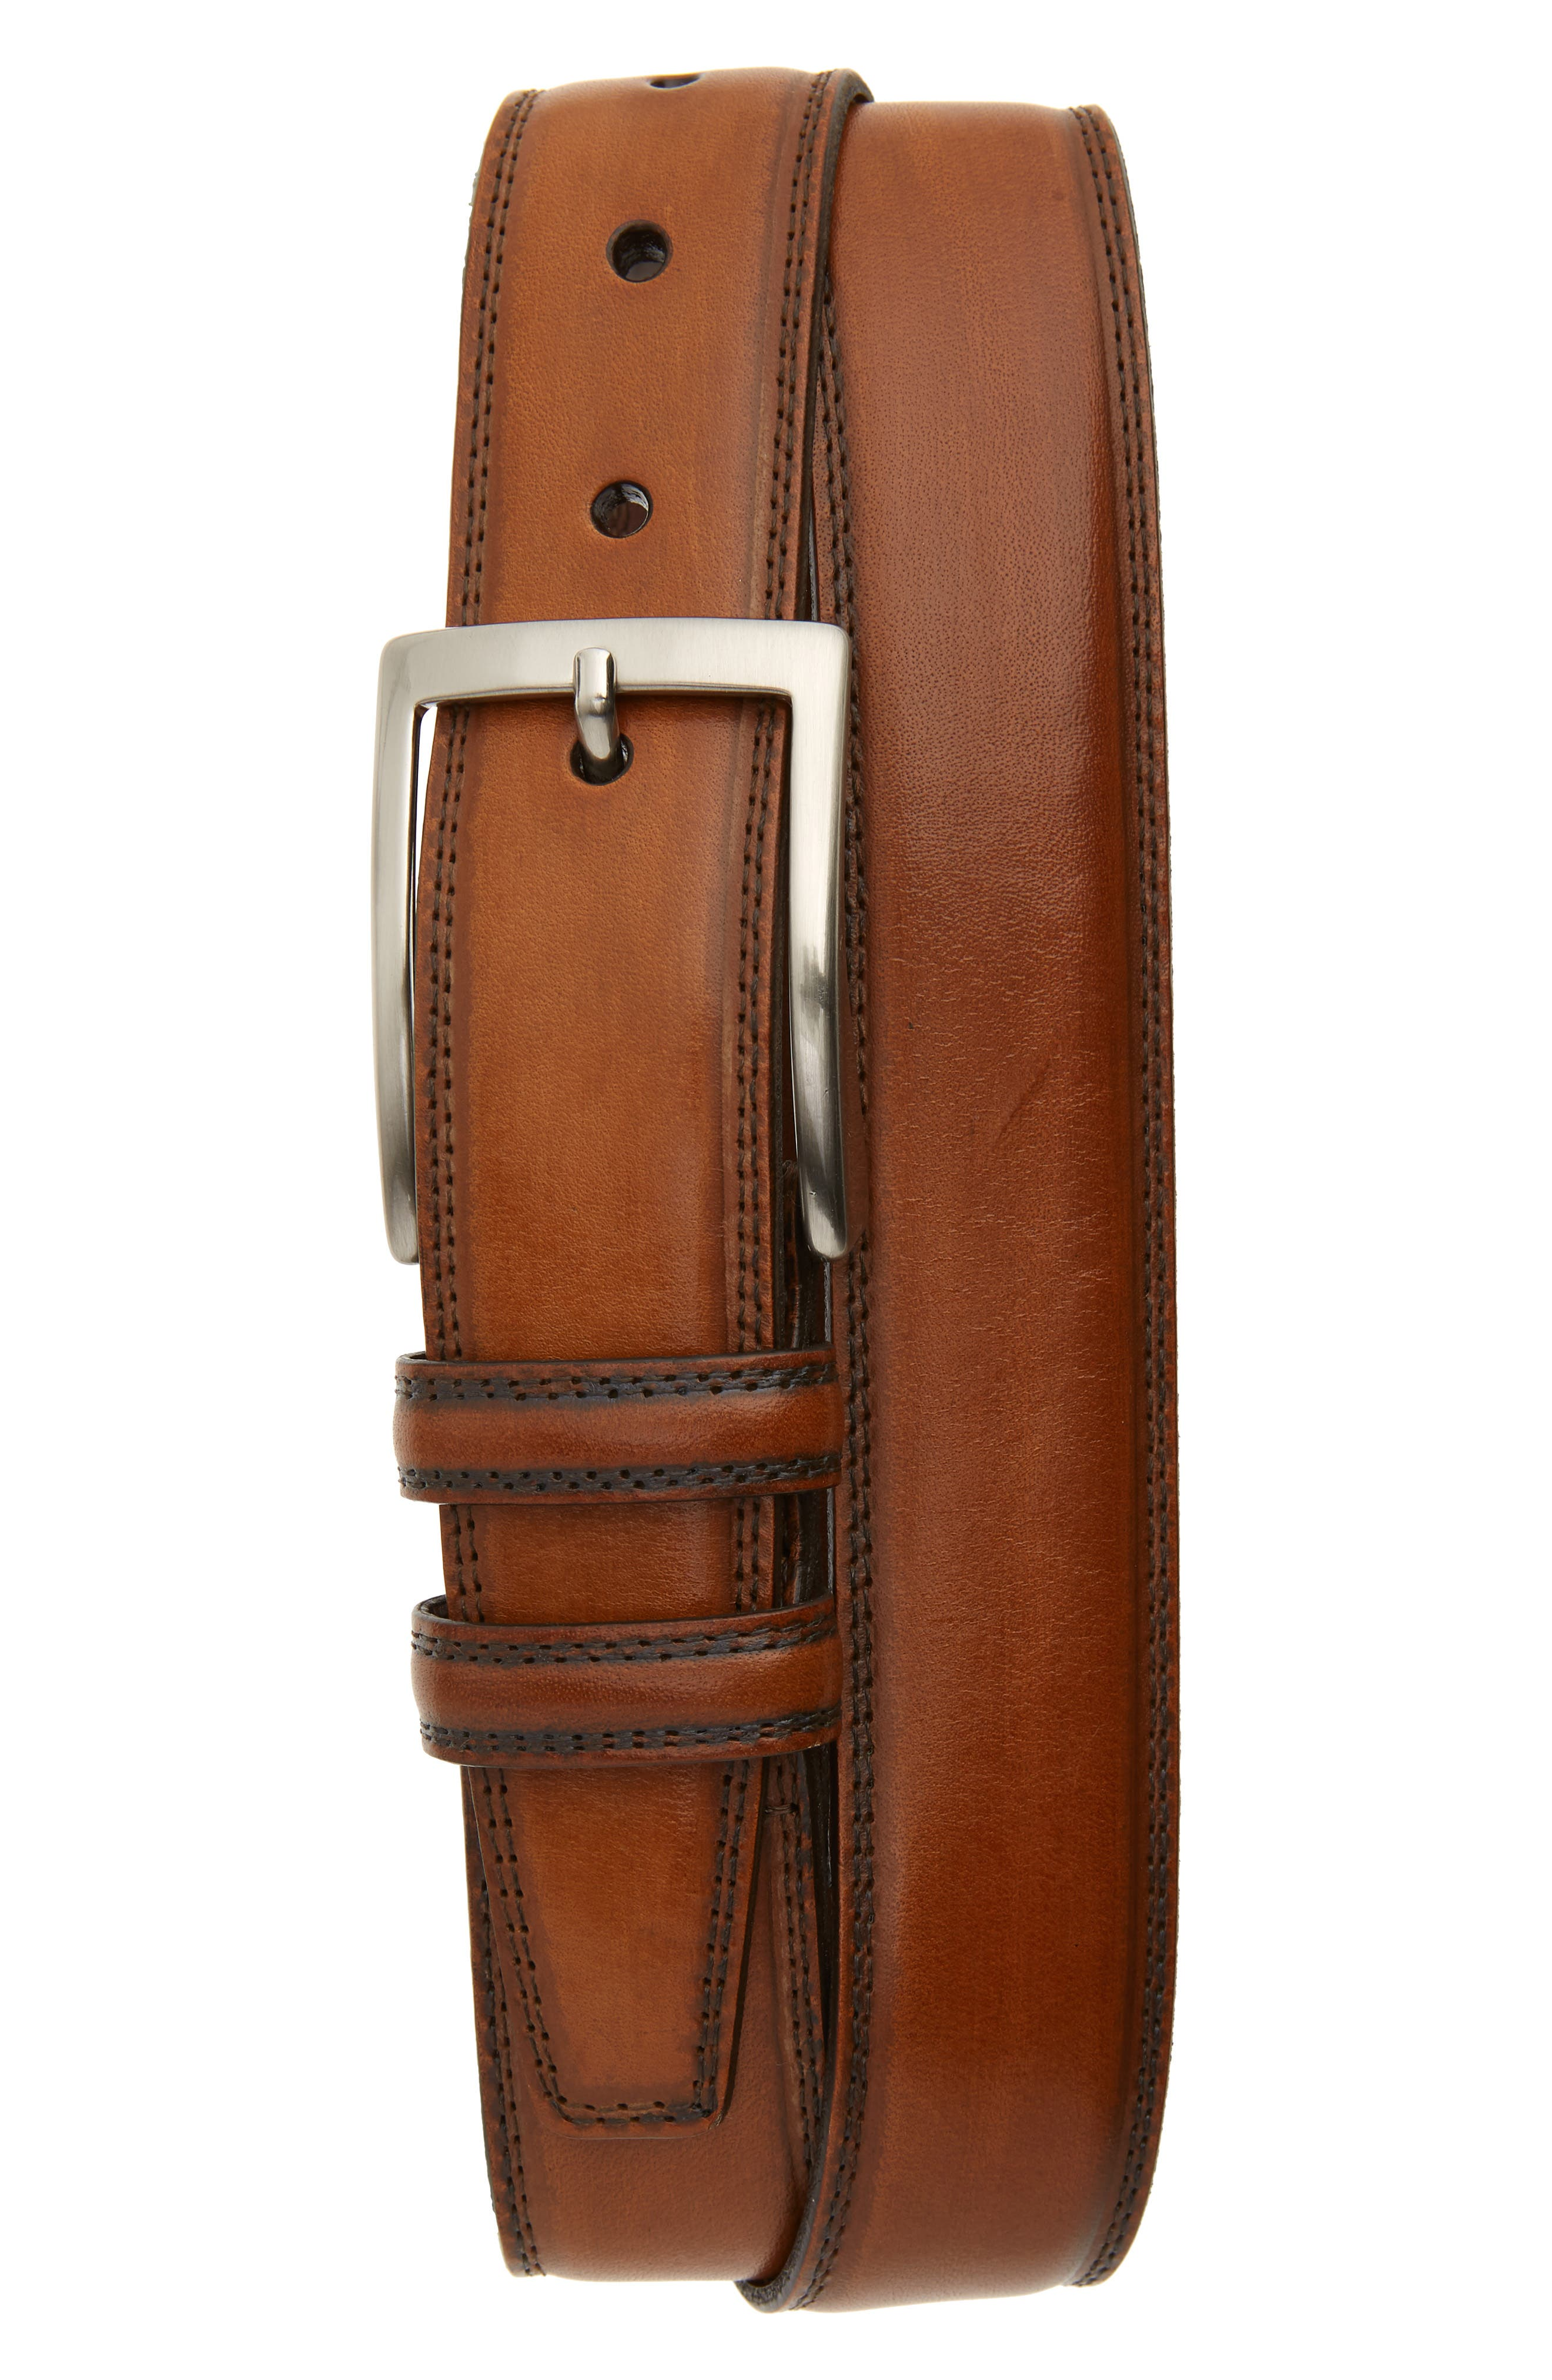 Two-tone kipskin leather elevates an American-made belt with exceptional charm. Style Name: Torino Kipskin Leather Belt. Style Number: 5758265 1. Available in stores.